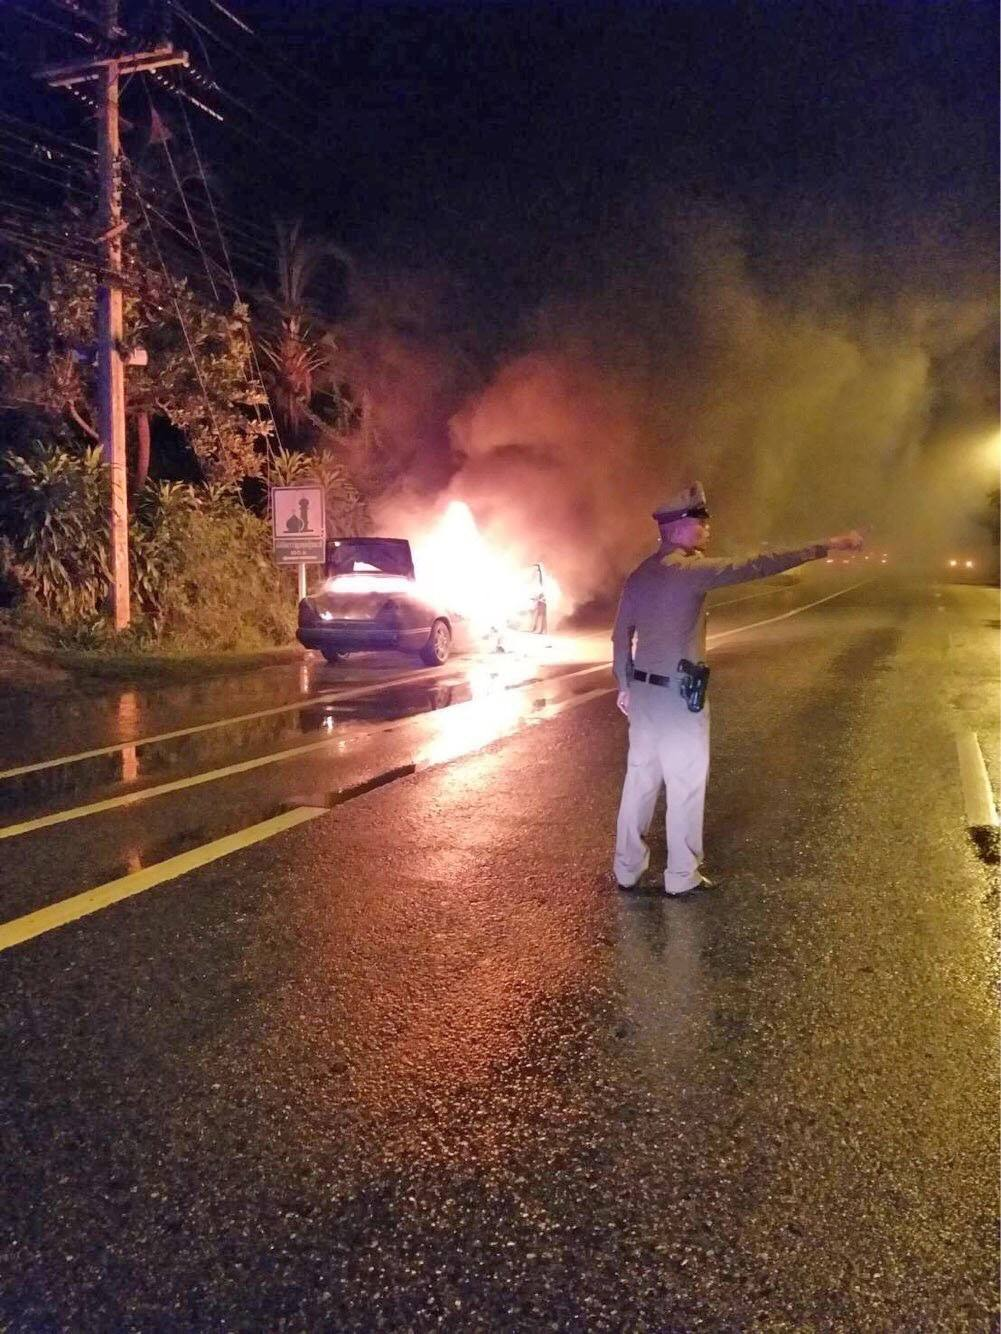 Mercedes Benz driver lucky to escape burning car | The Thaiger